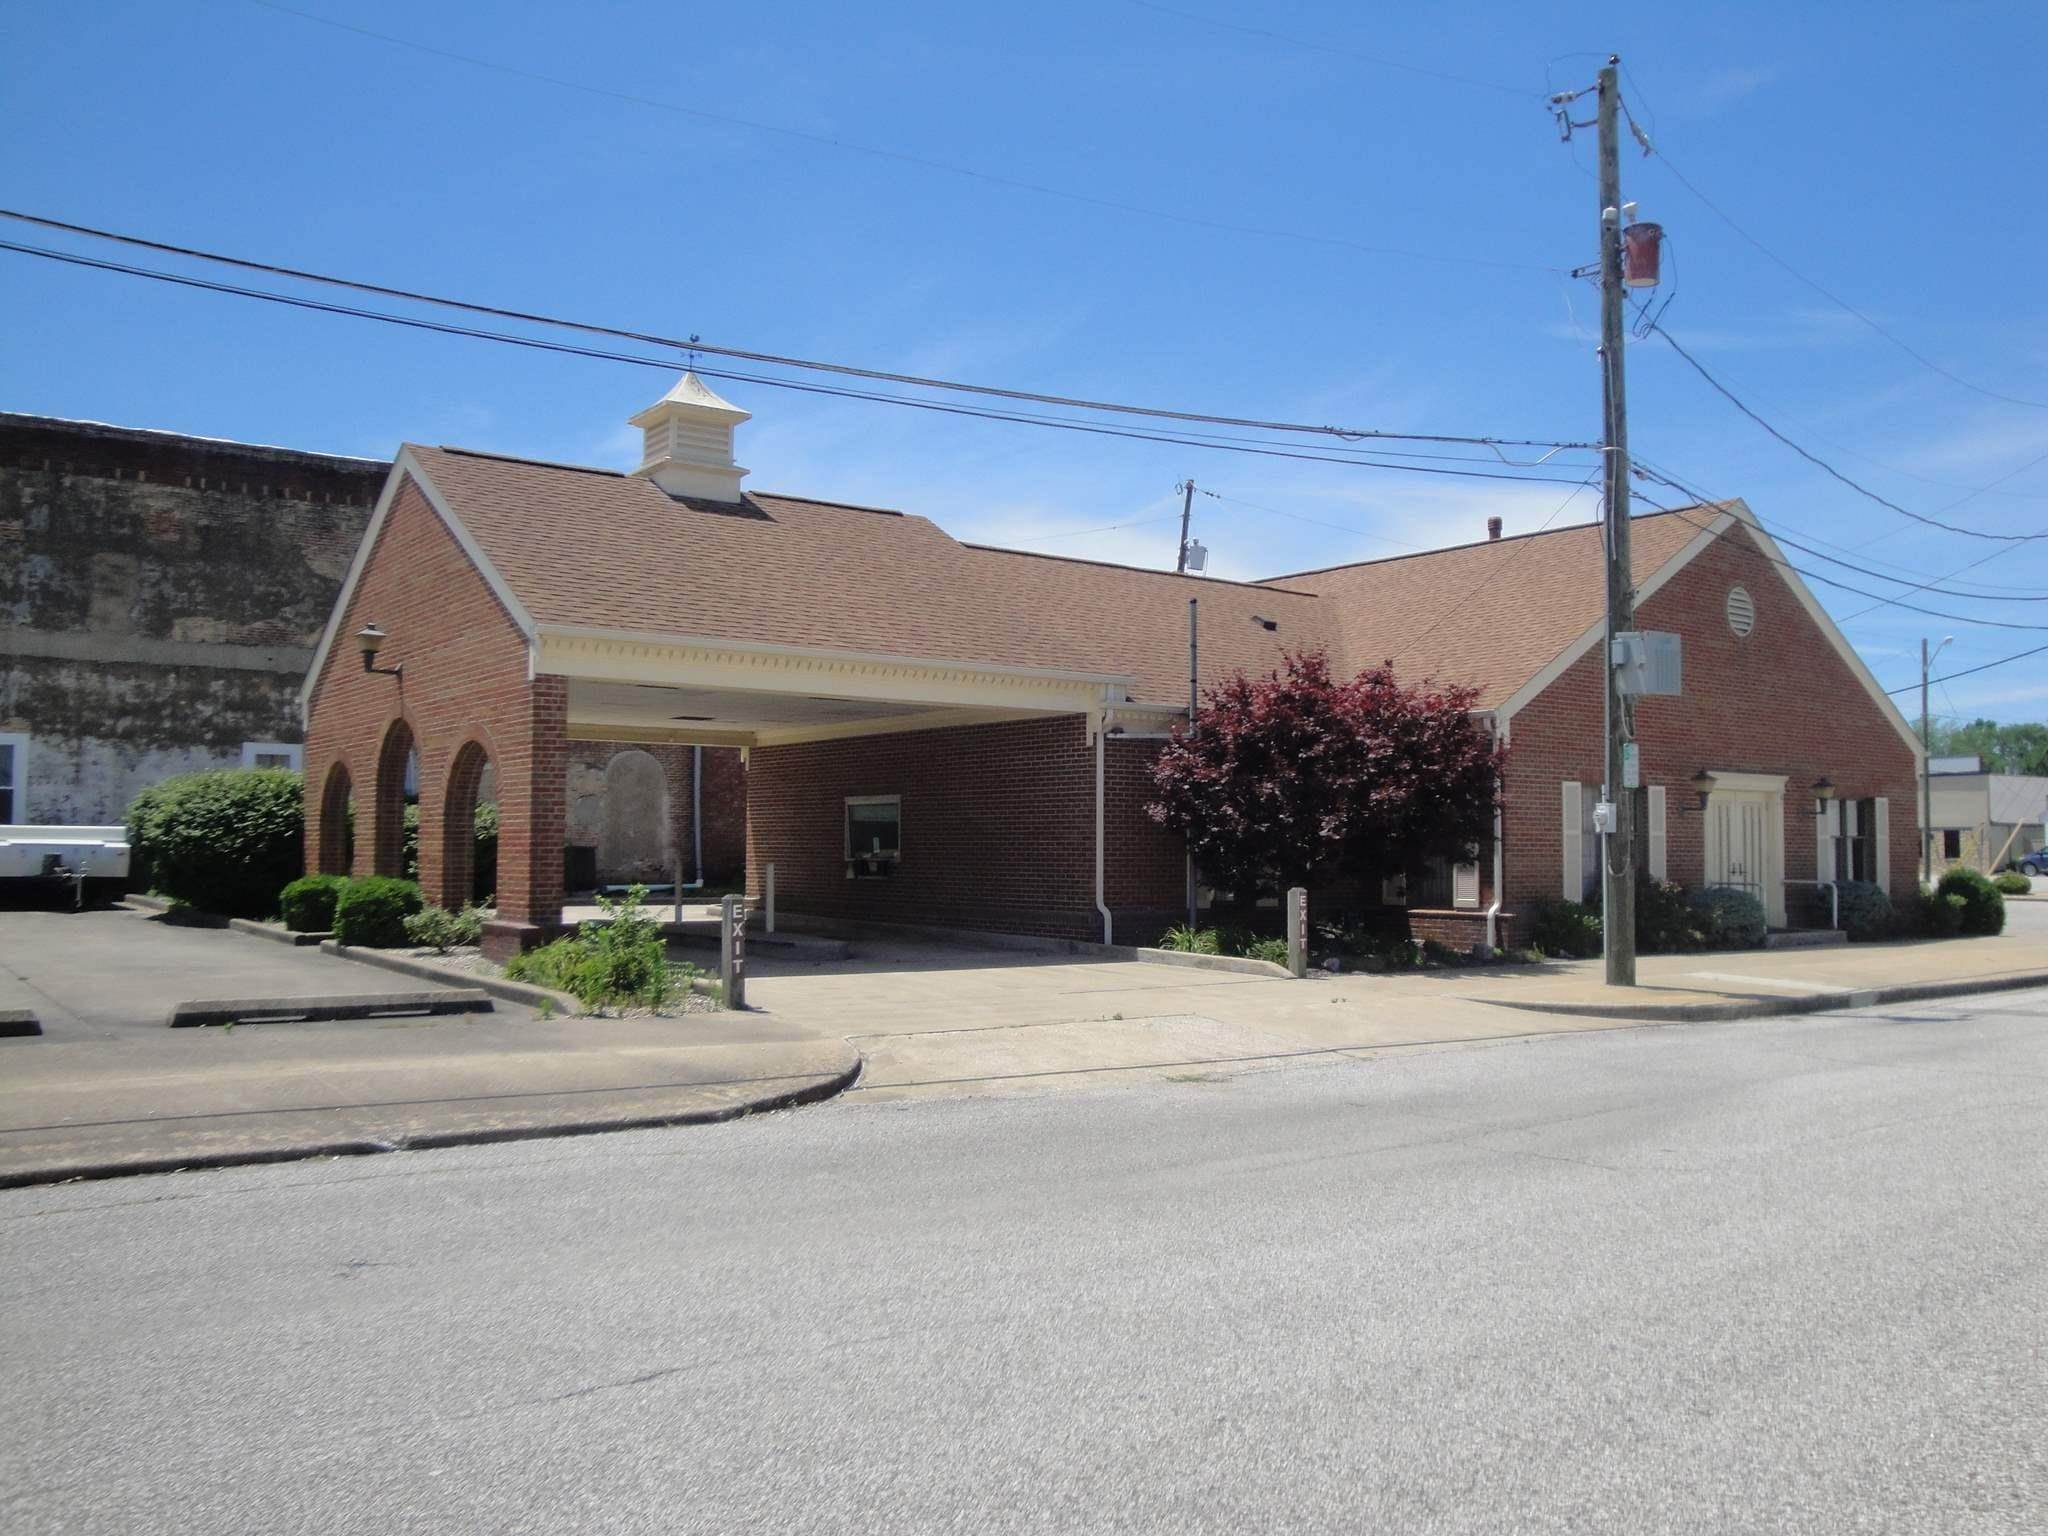 Commercial for Sale at 203 NE 1ST. Street Loogootee, Indiana 47553 United States